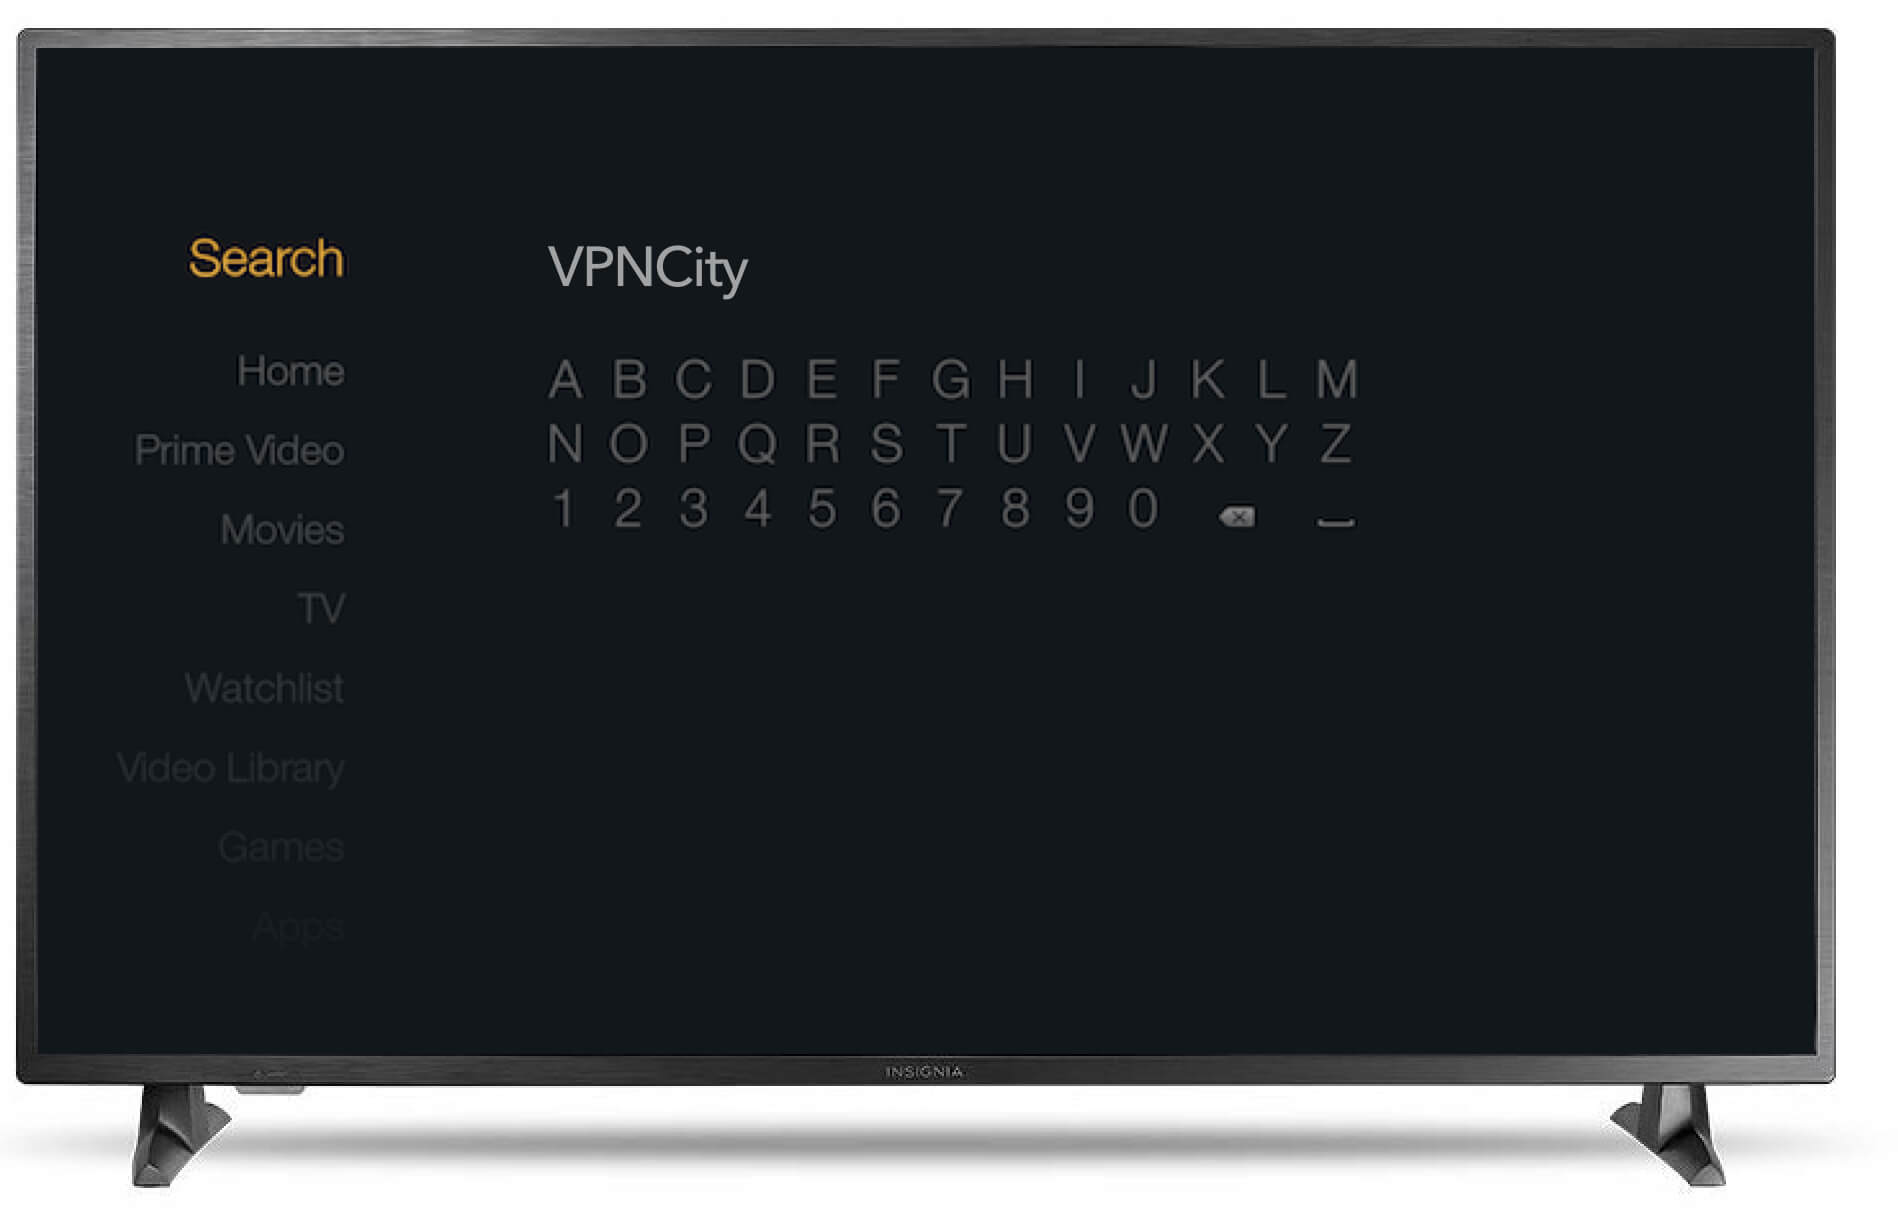 VPNCity Amazon Fire TV search